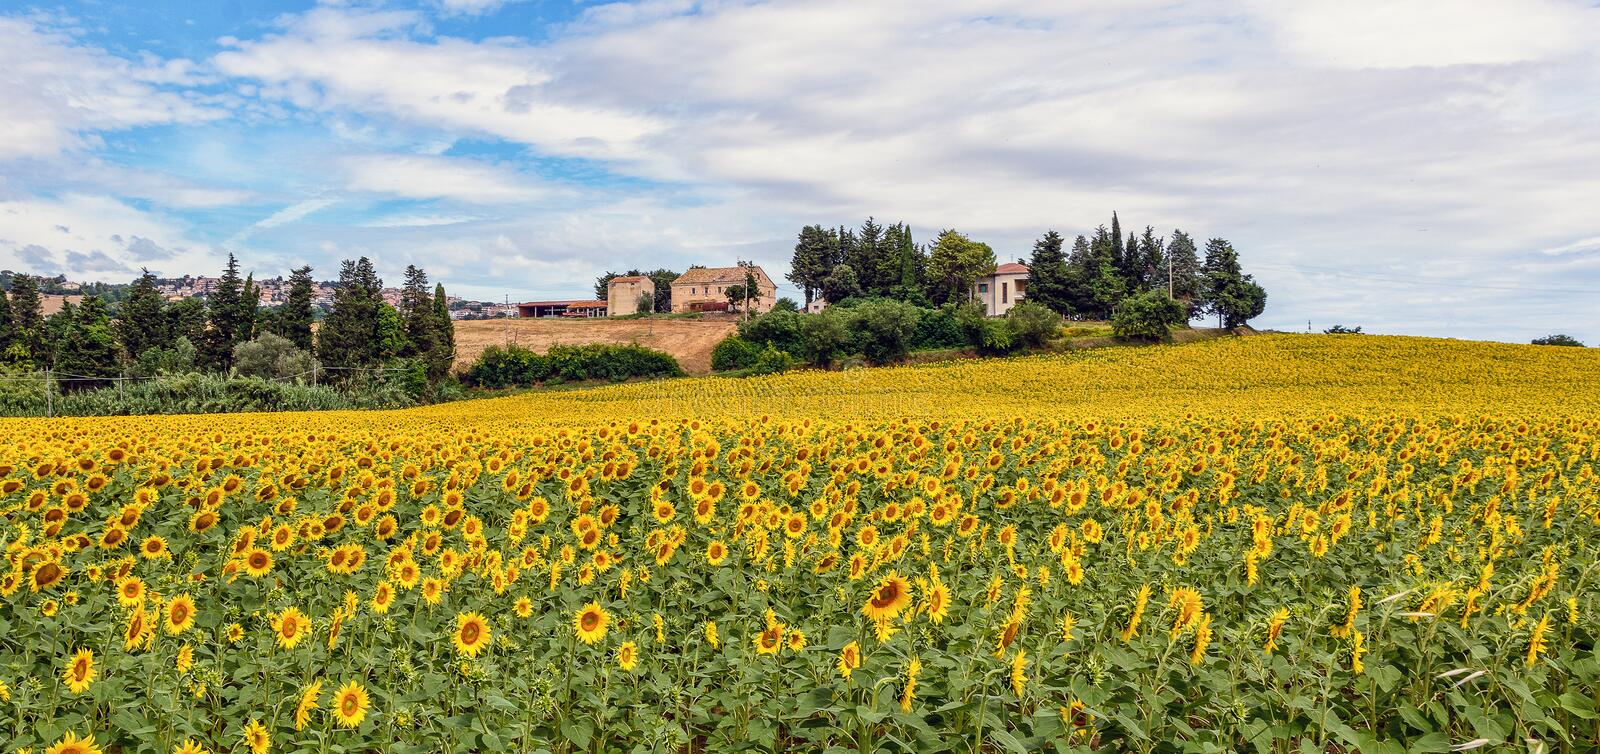 Download Field Of Sunflowers Stock Photo - Image: 89501582